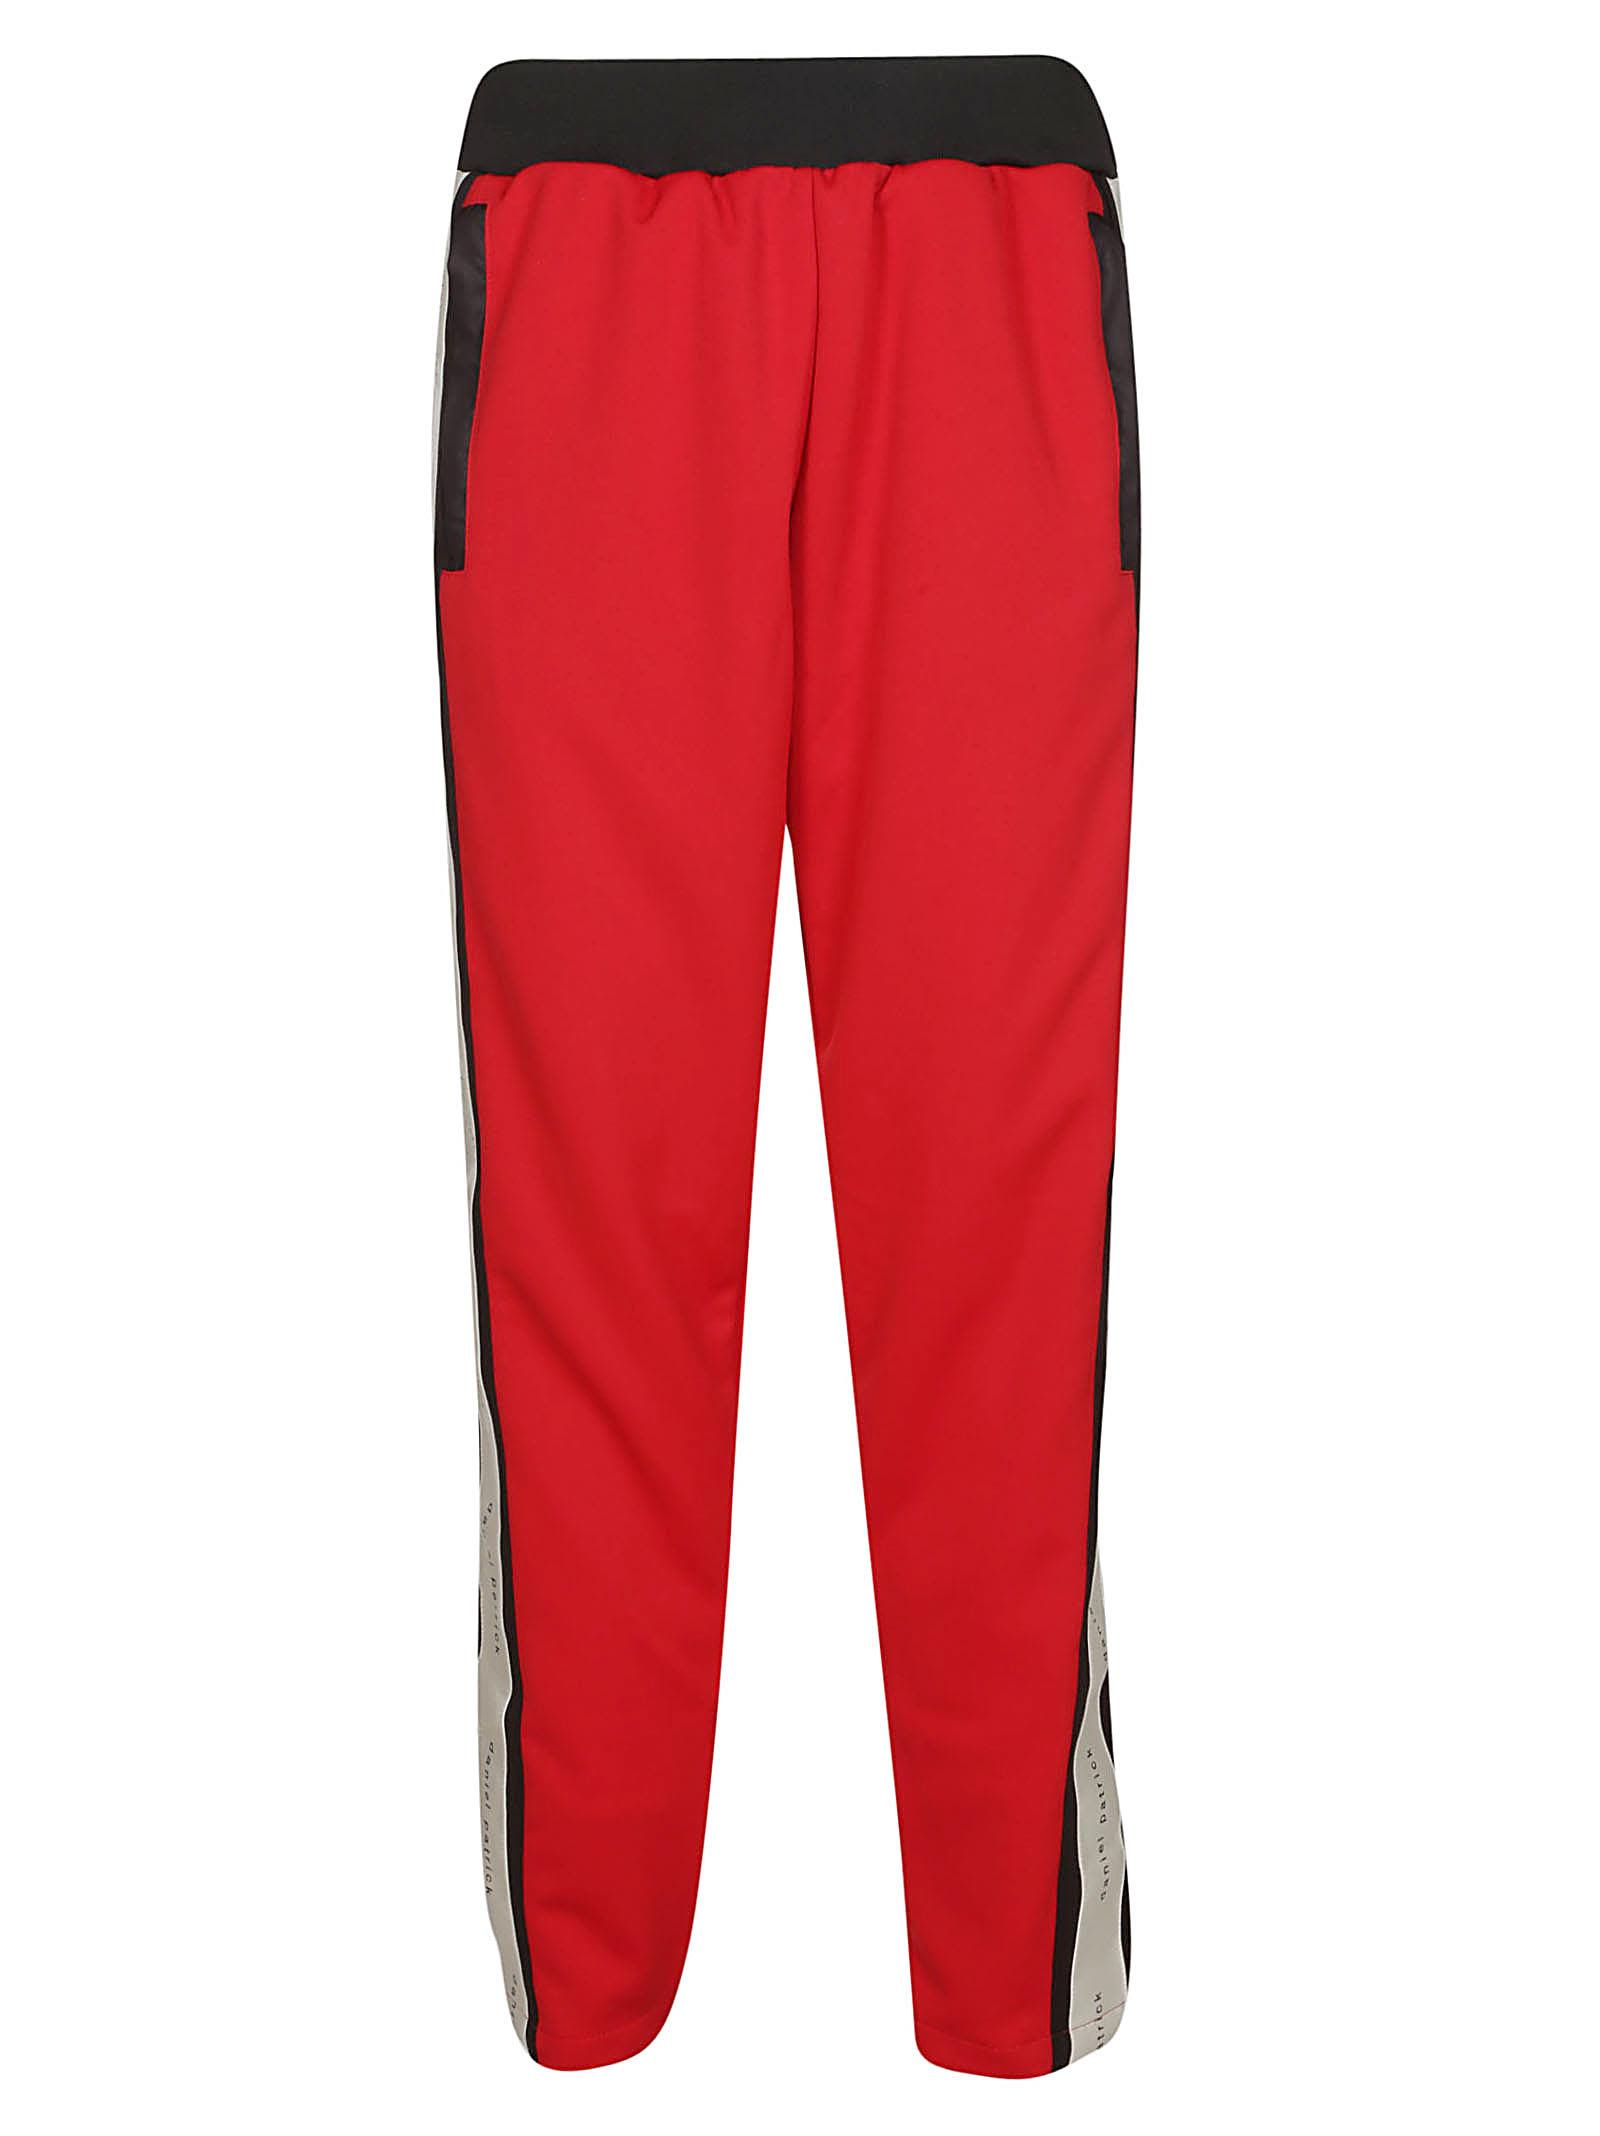 DANIEL PATRICK Elasticated Trousers in Red